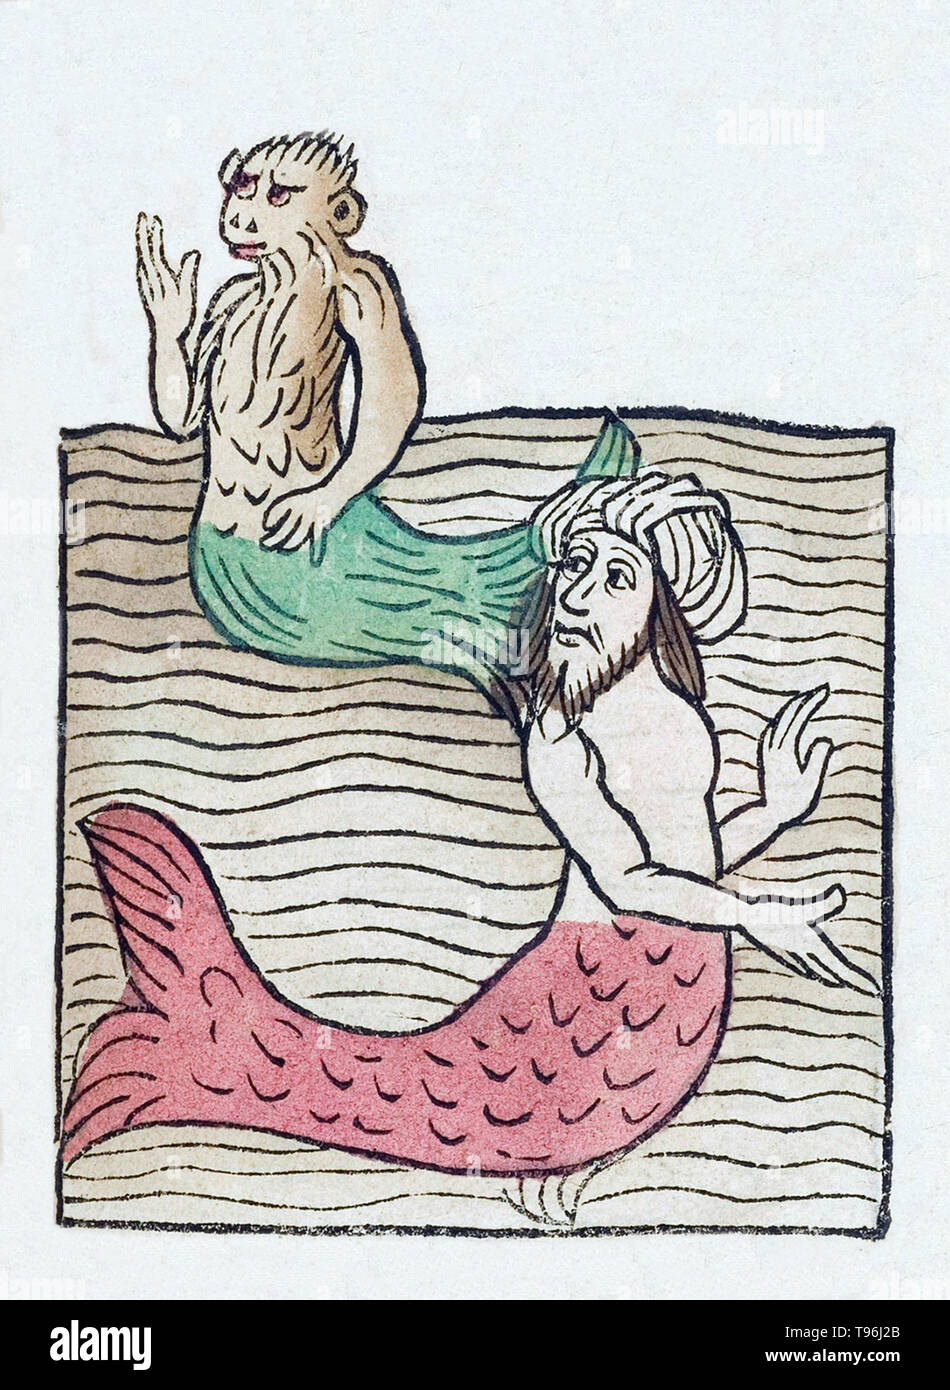 Mermen have the form of a male human from the waist up and are fish-like from the waist down, having scaly fish tails in place of legs. The Hortus Sanitatis (Garden of Health), the first natural history encyclopedia, was published by Jacob Meydenbach in Germany, 1491.  He describes plants and animals (both real and mythical) together with minerals and various trades, with their medicinal value and method of preparation. The hand-colored woodcut illustrations are stylized but often easily recognizable. 1547 edition. - Stock Image